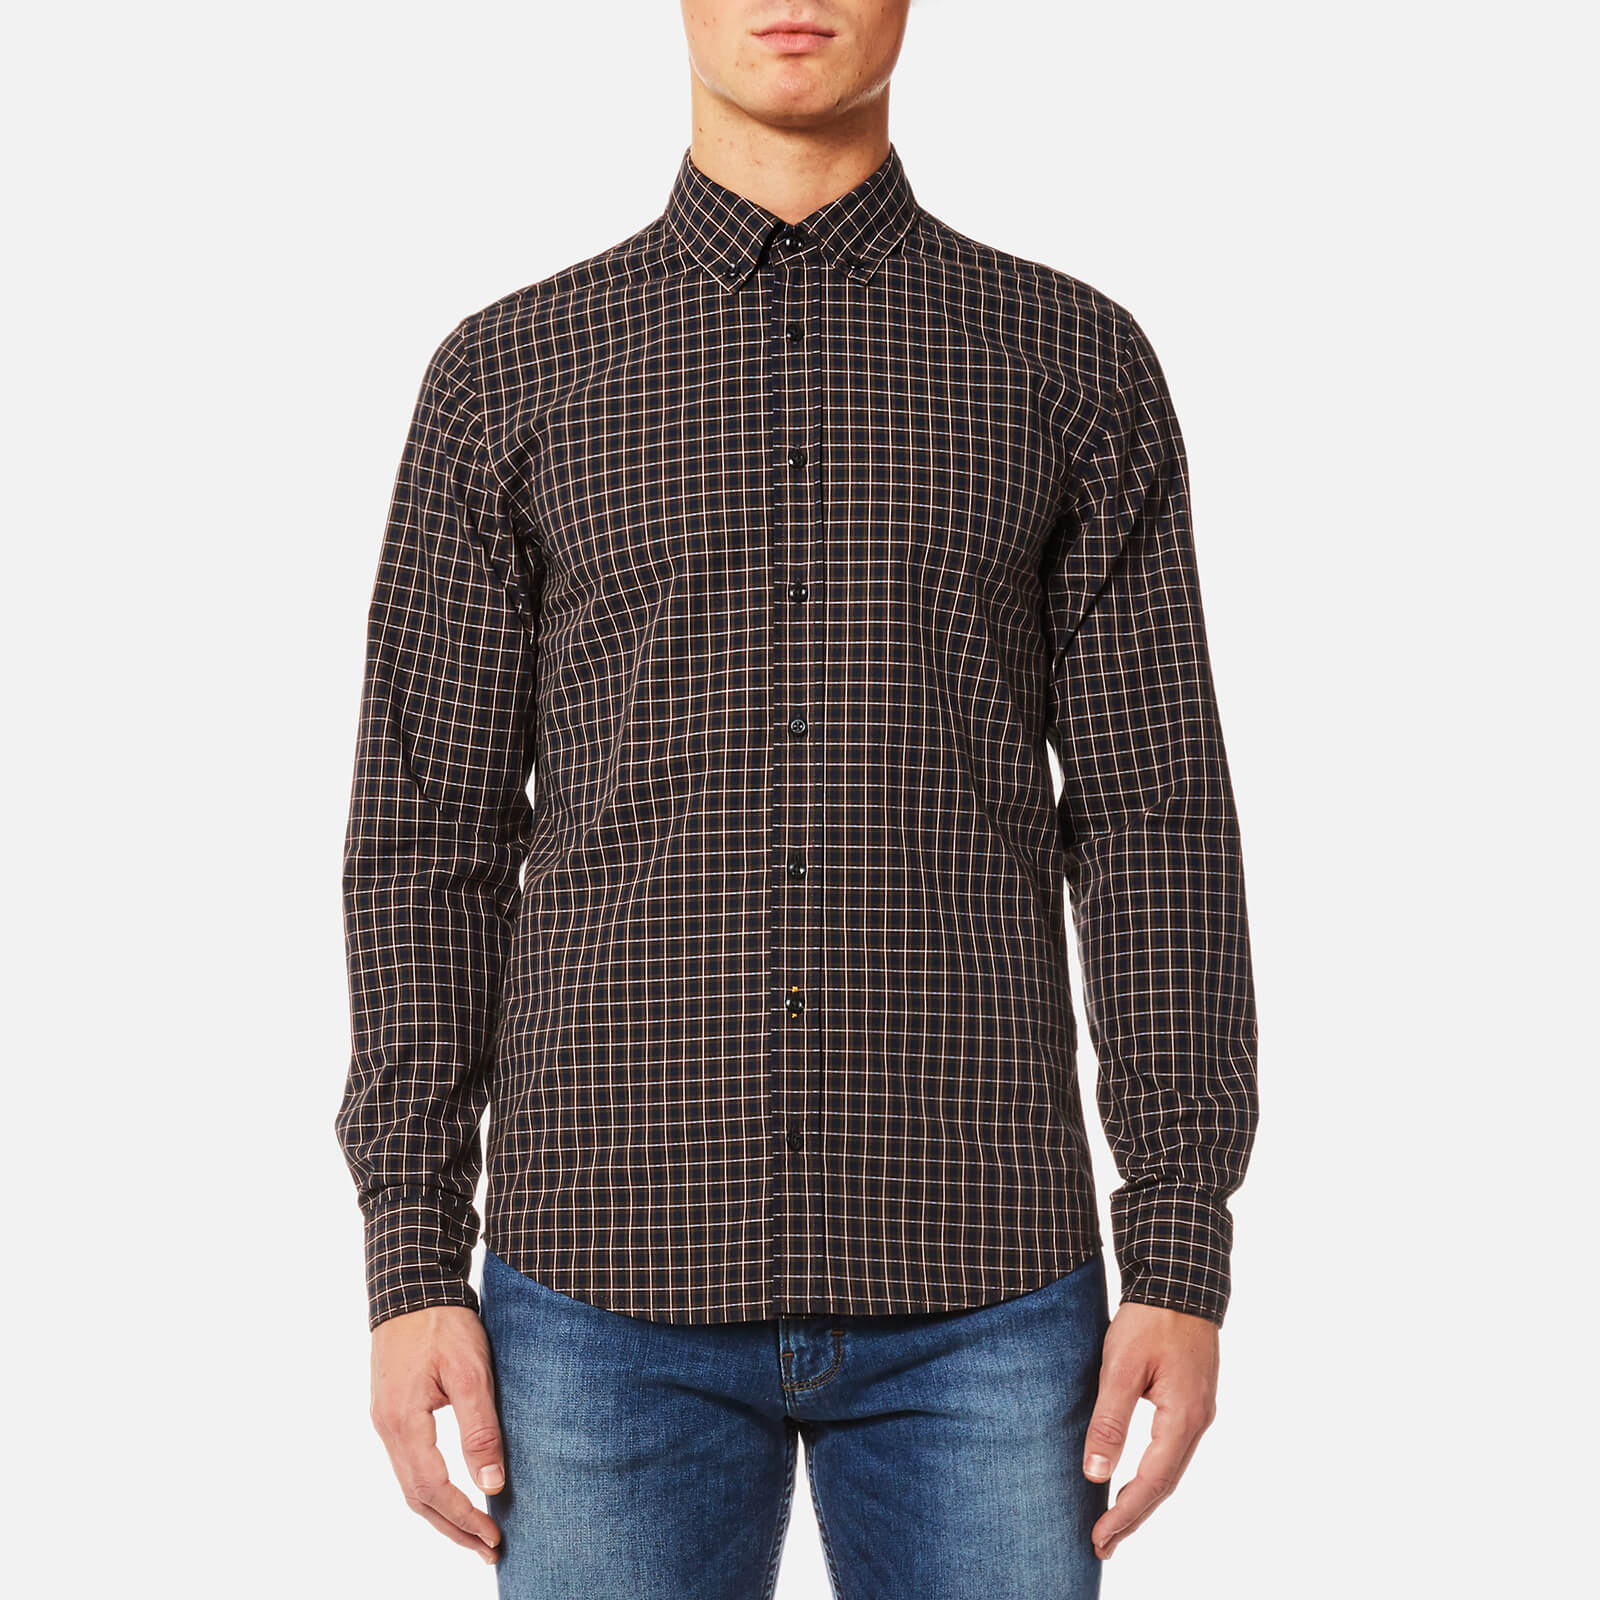 c5e6d38b BOSS Orange Men's Epreppy Button Down Check Shirt - Open Red - Free UK  Delivery over £50